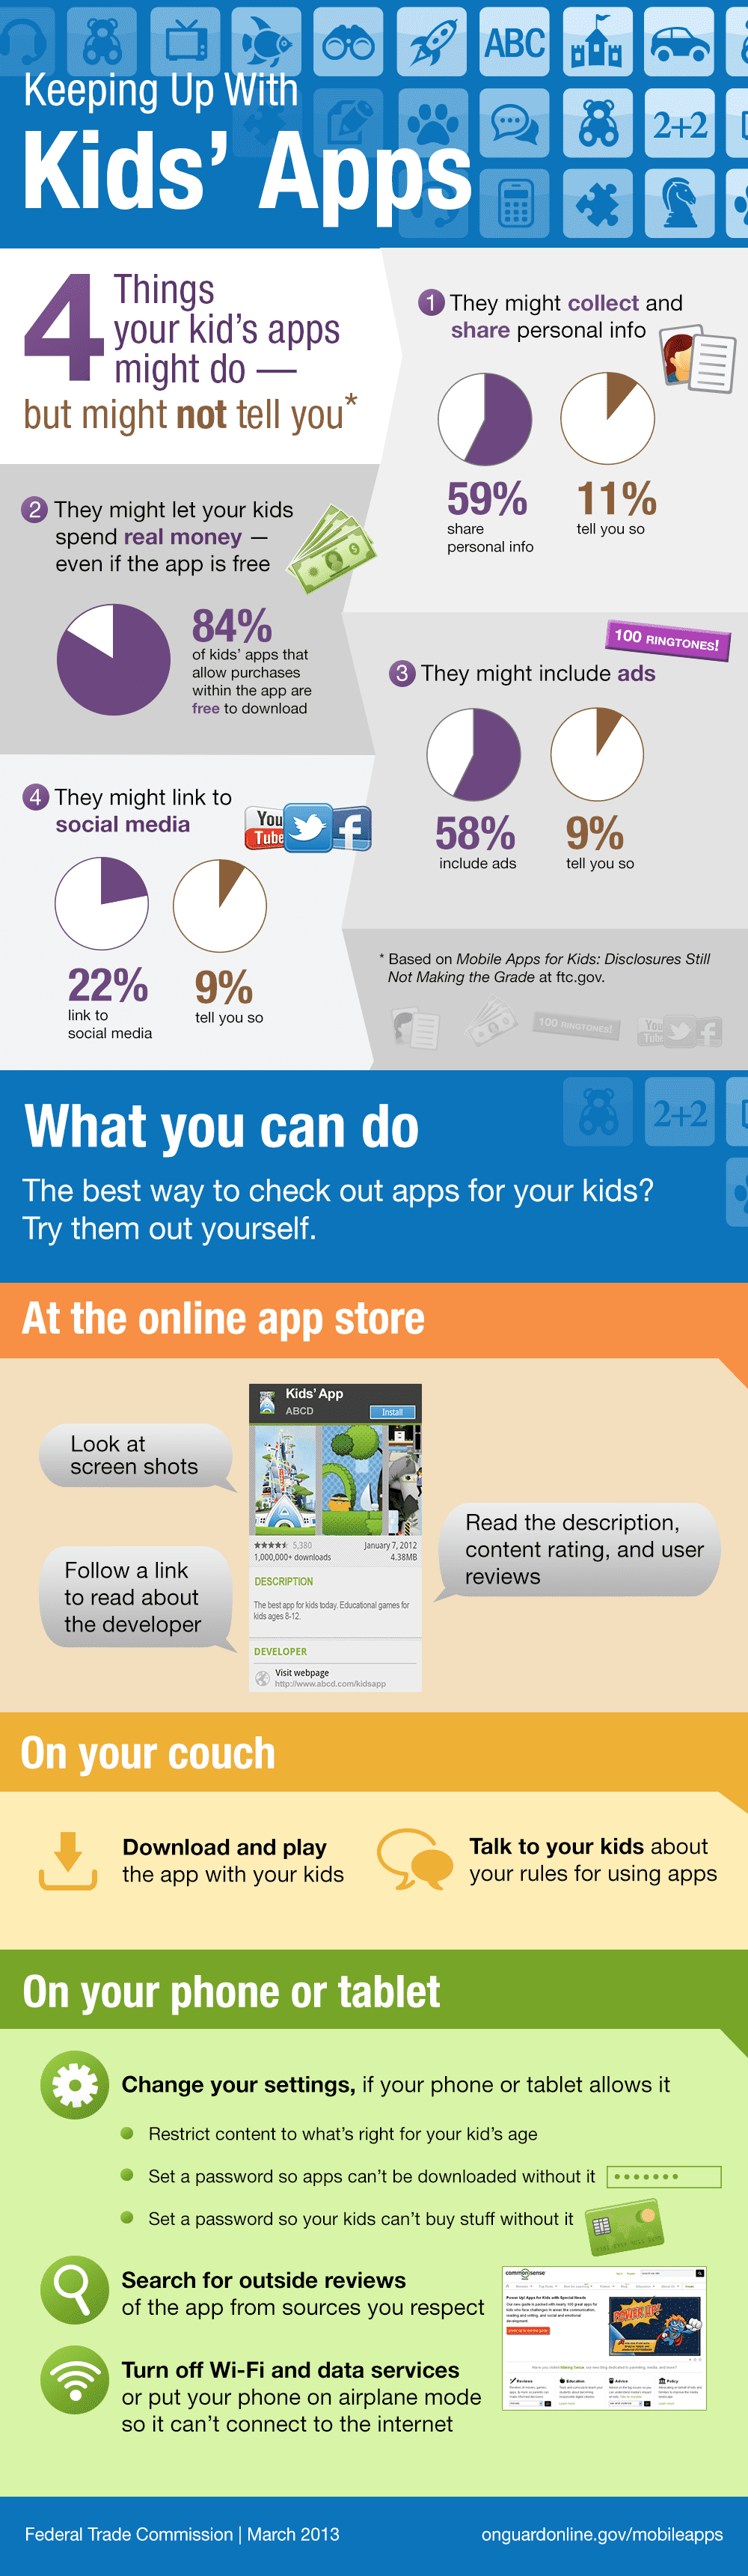 Kids and mobile apps